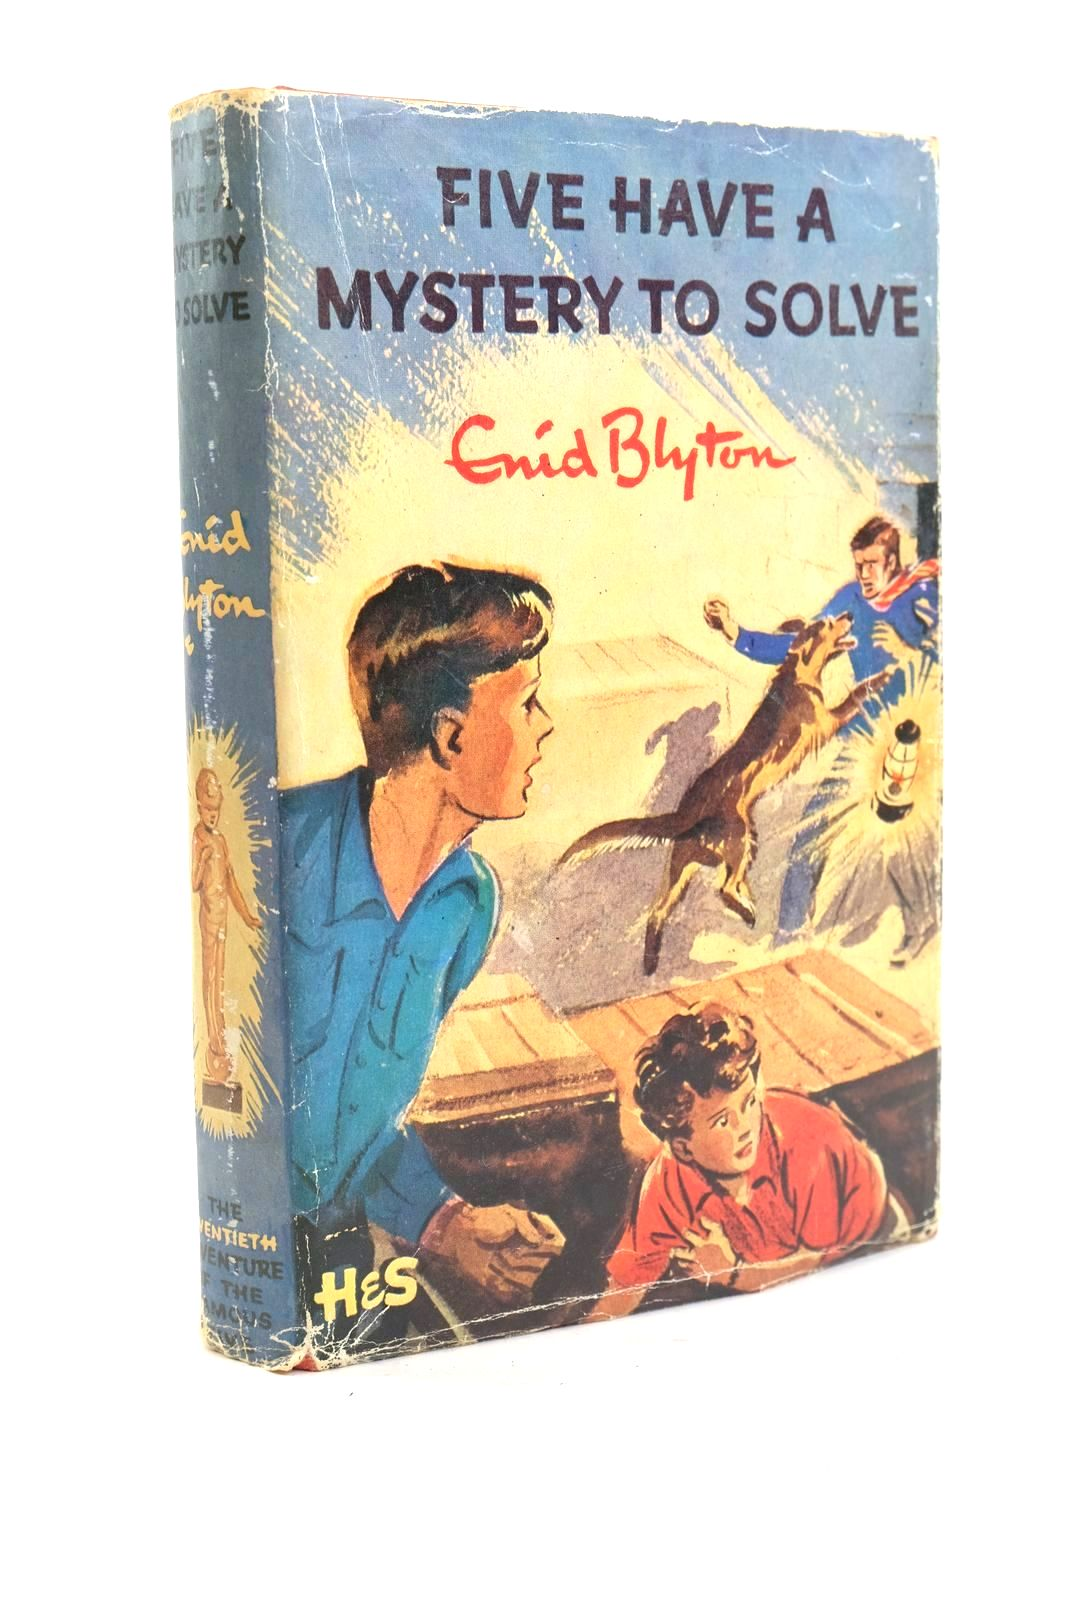 Photo of FIVE HAVE A MYSTERY TO SOLVE written by Blyton, Enid illustrated by Soper, Eileen published by Hodder & Stoughton (STOCK CODE: 1319951)  for sale by Stella & Rose's Books